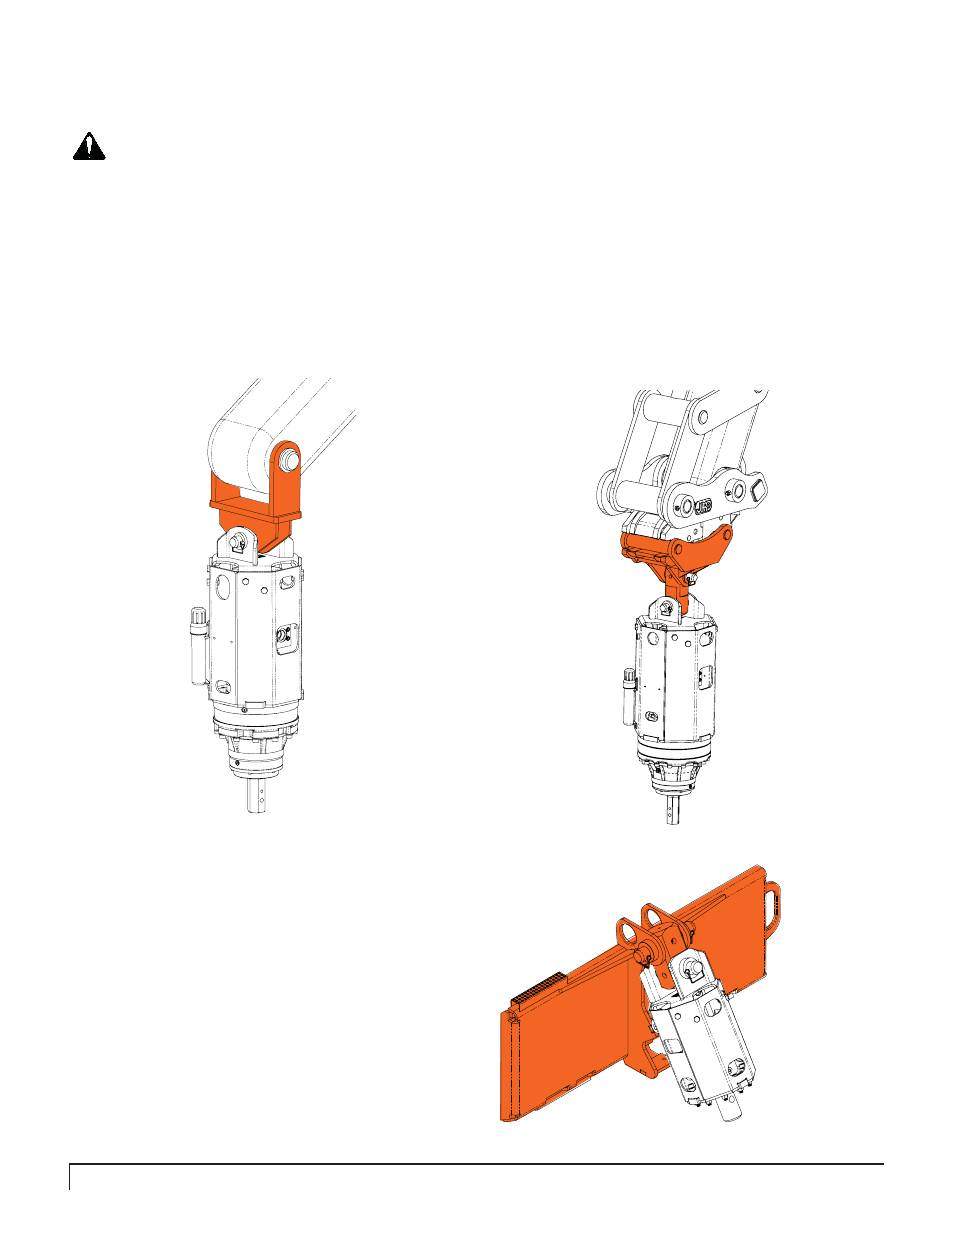 Pengo DT-5 User Manual | Page 14 / 48 | Also for: DT-15, RT